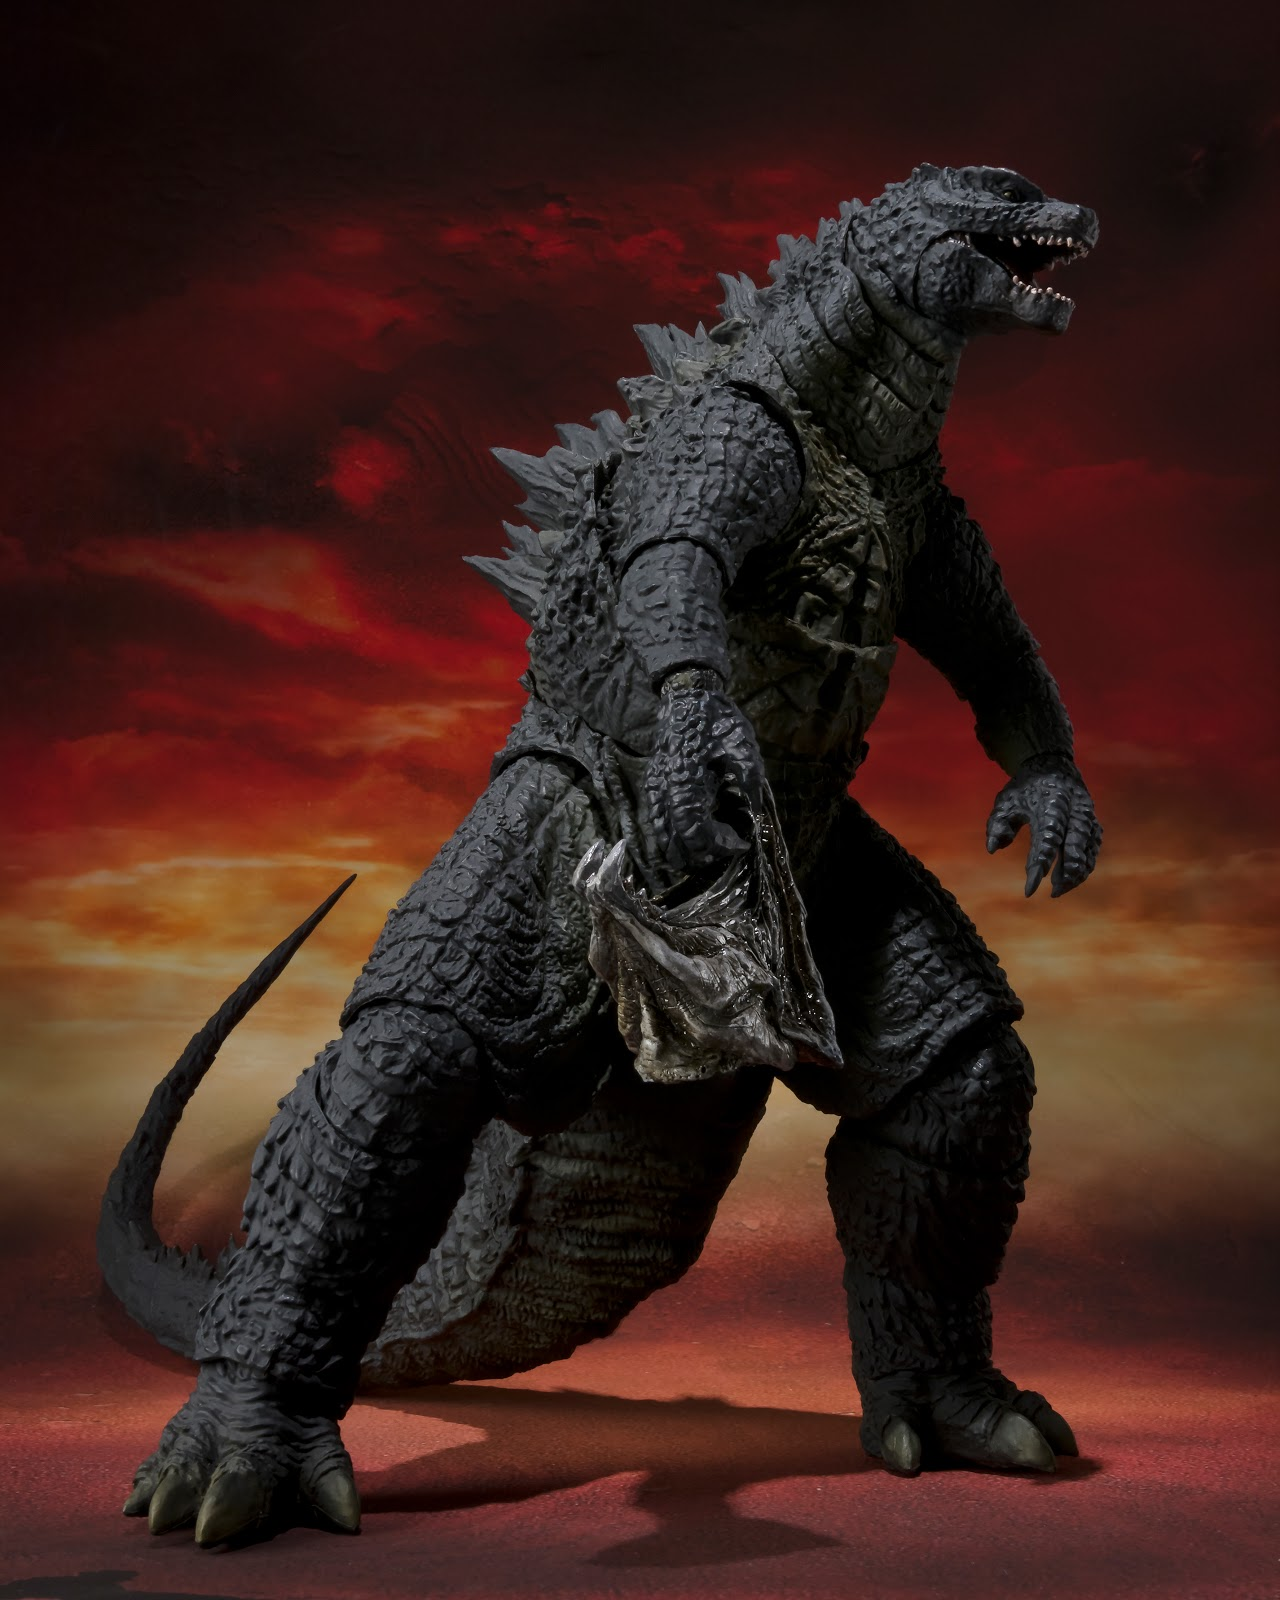 S.H.MonsterArts: The Articulation Series: Hi-Res Photos Of